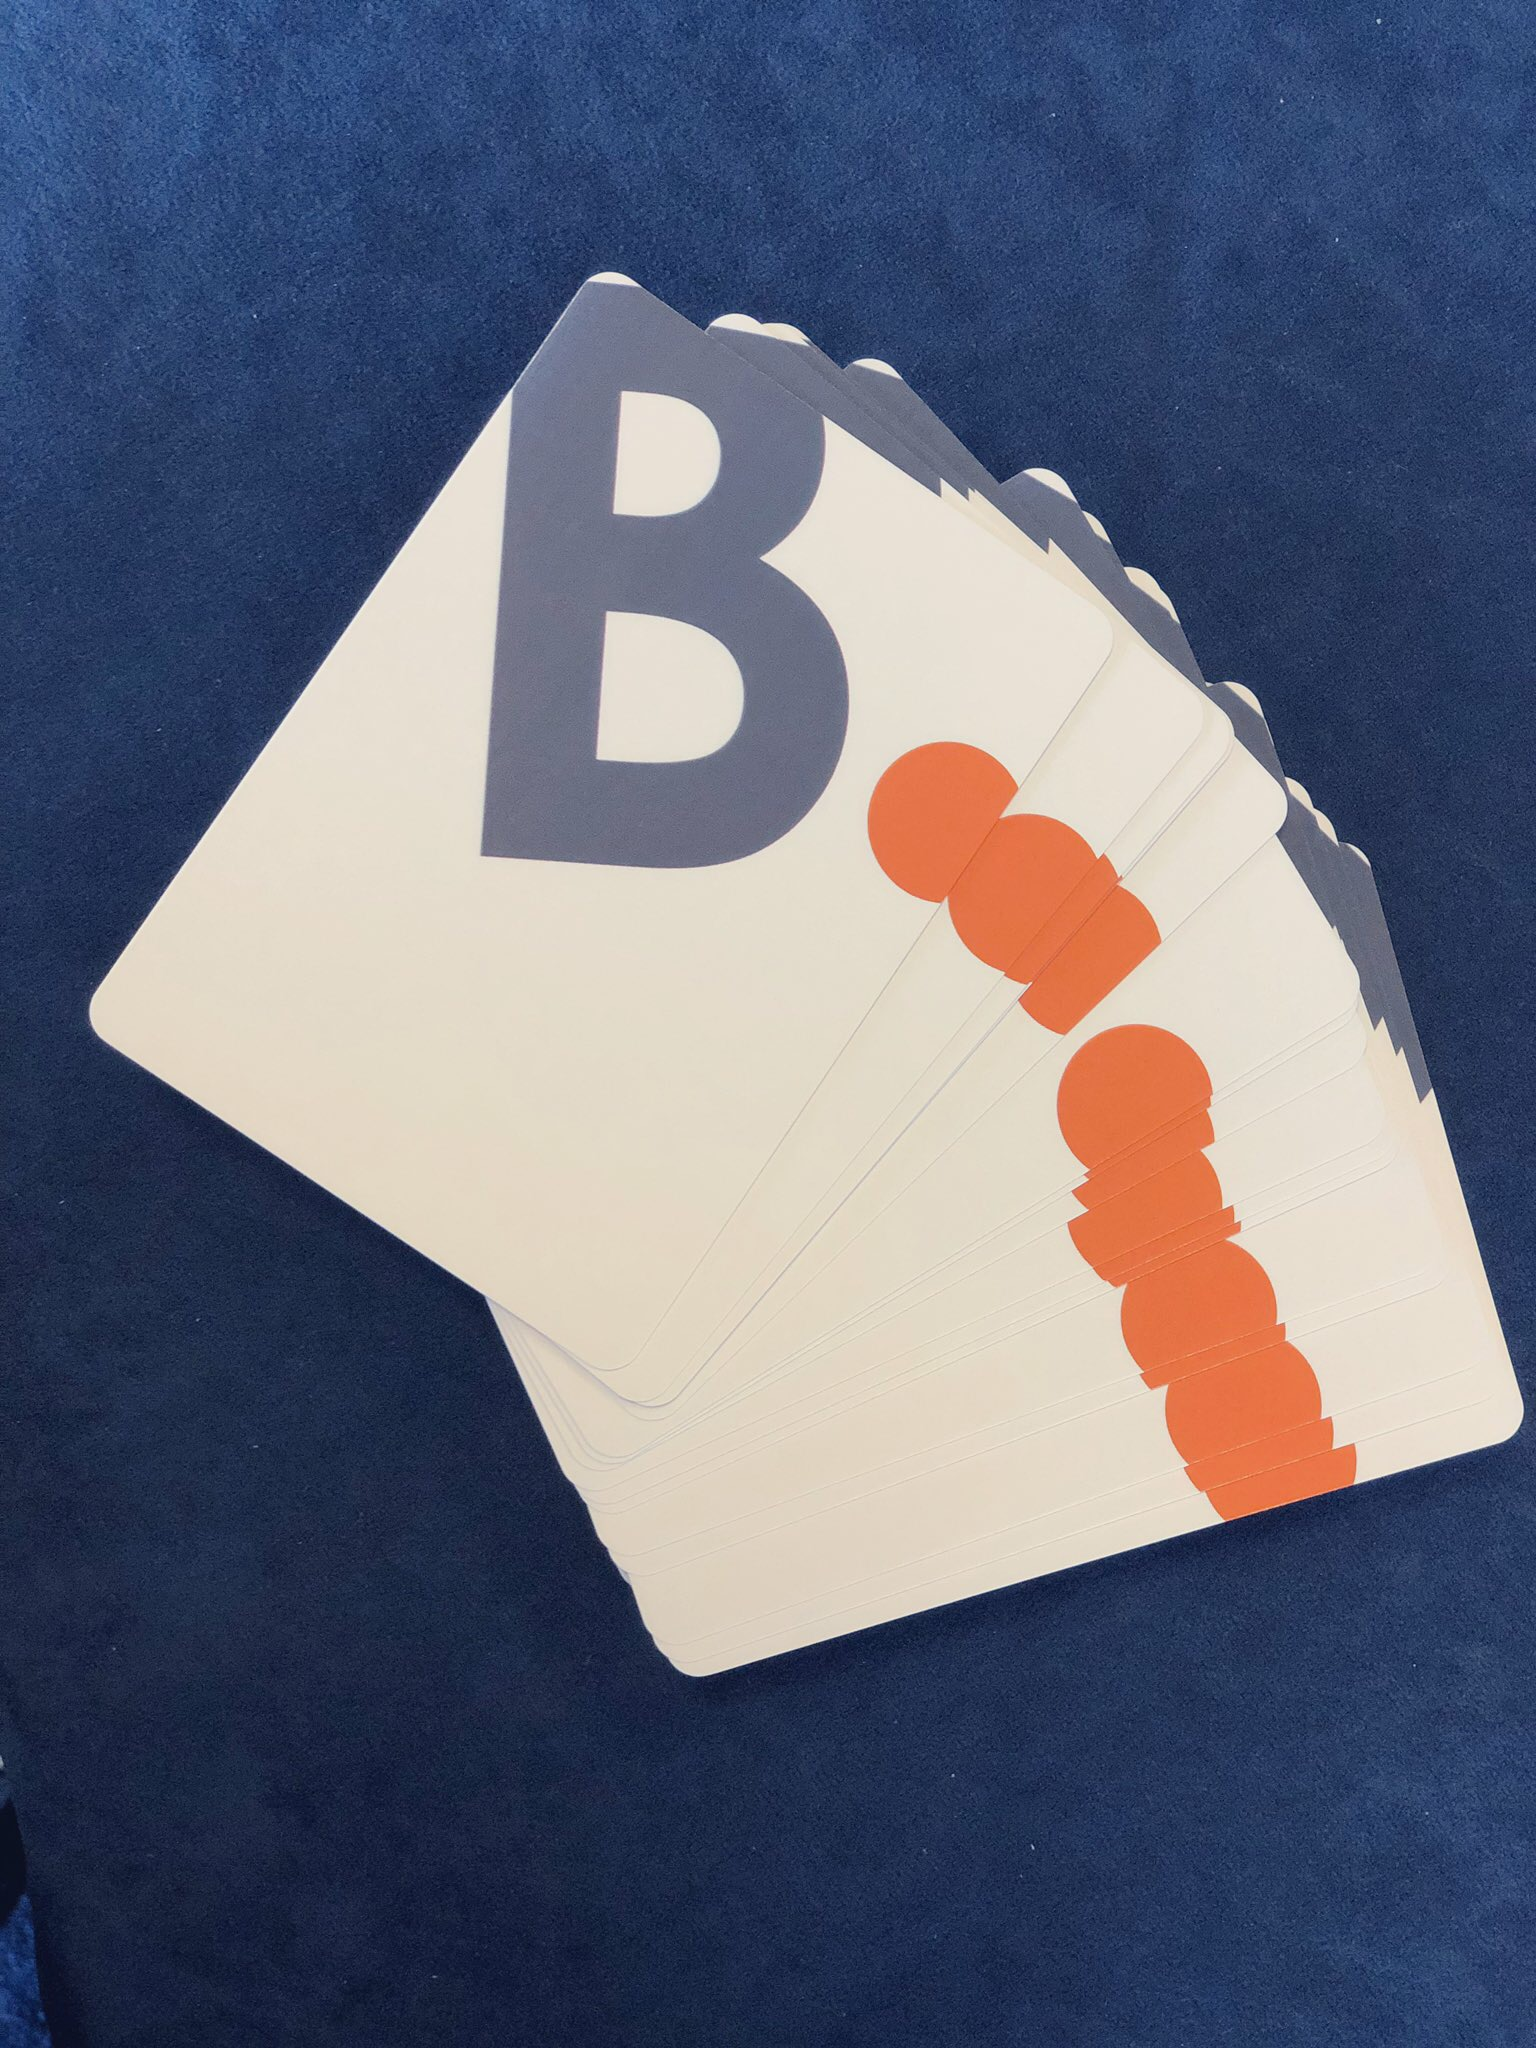 Because everyone loves a Bromford themed playing card! Or are they……